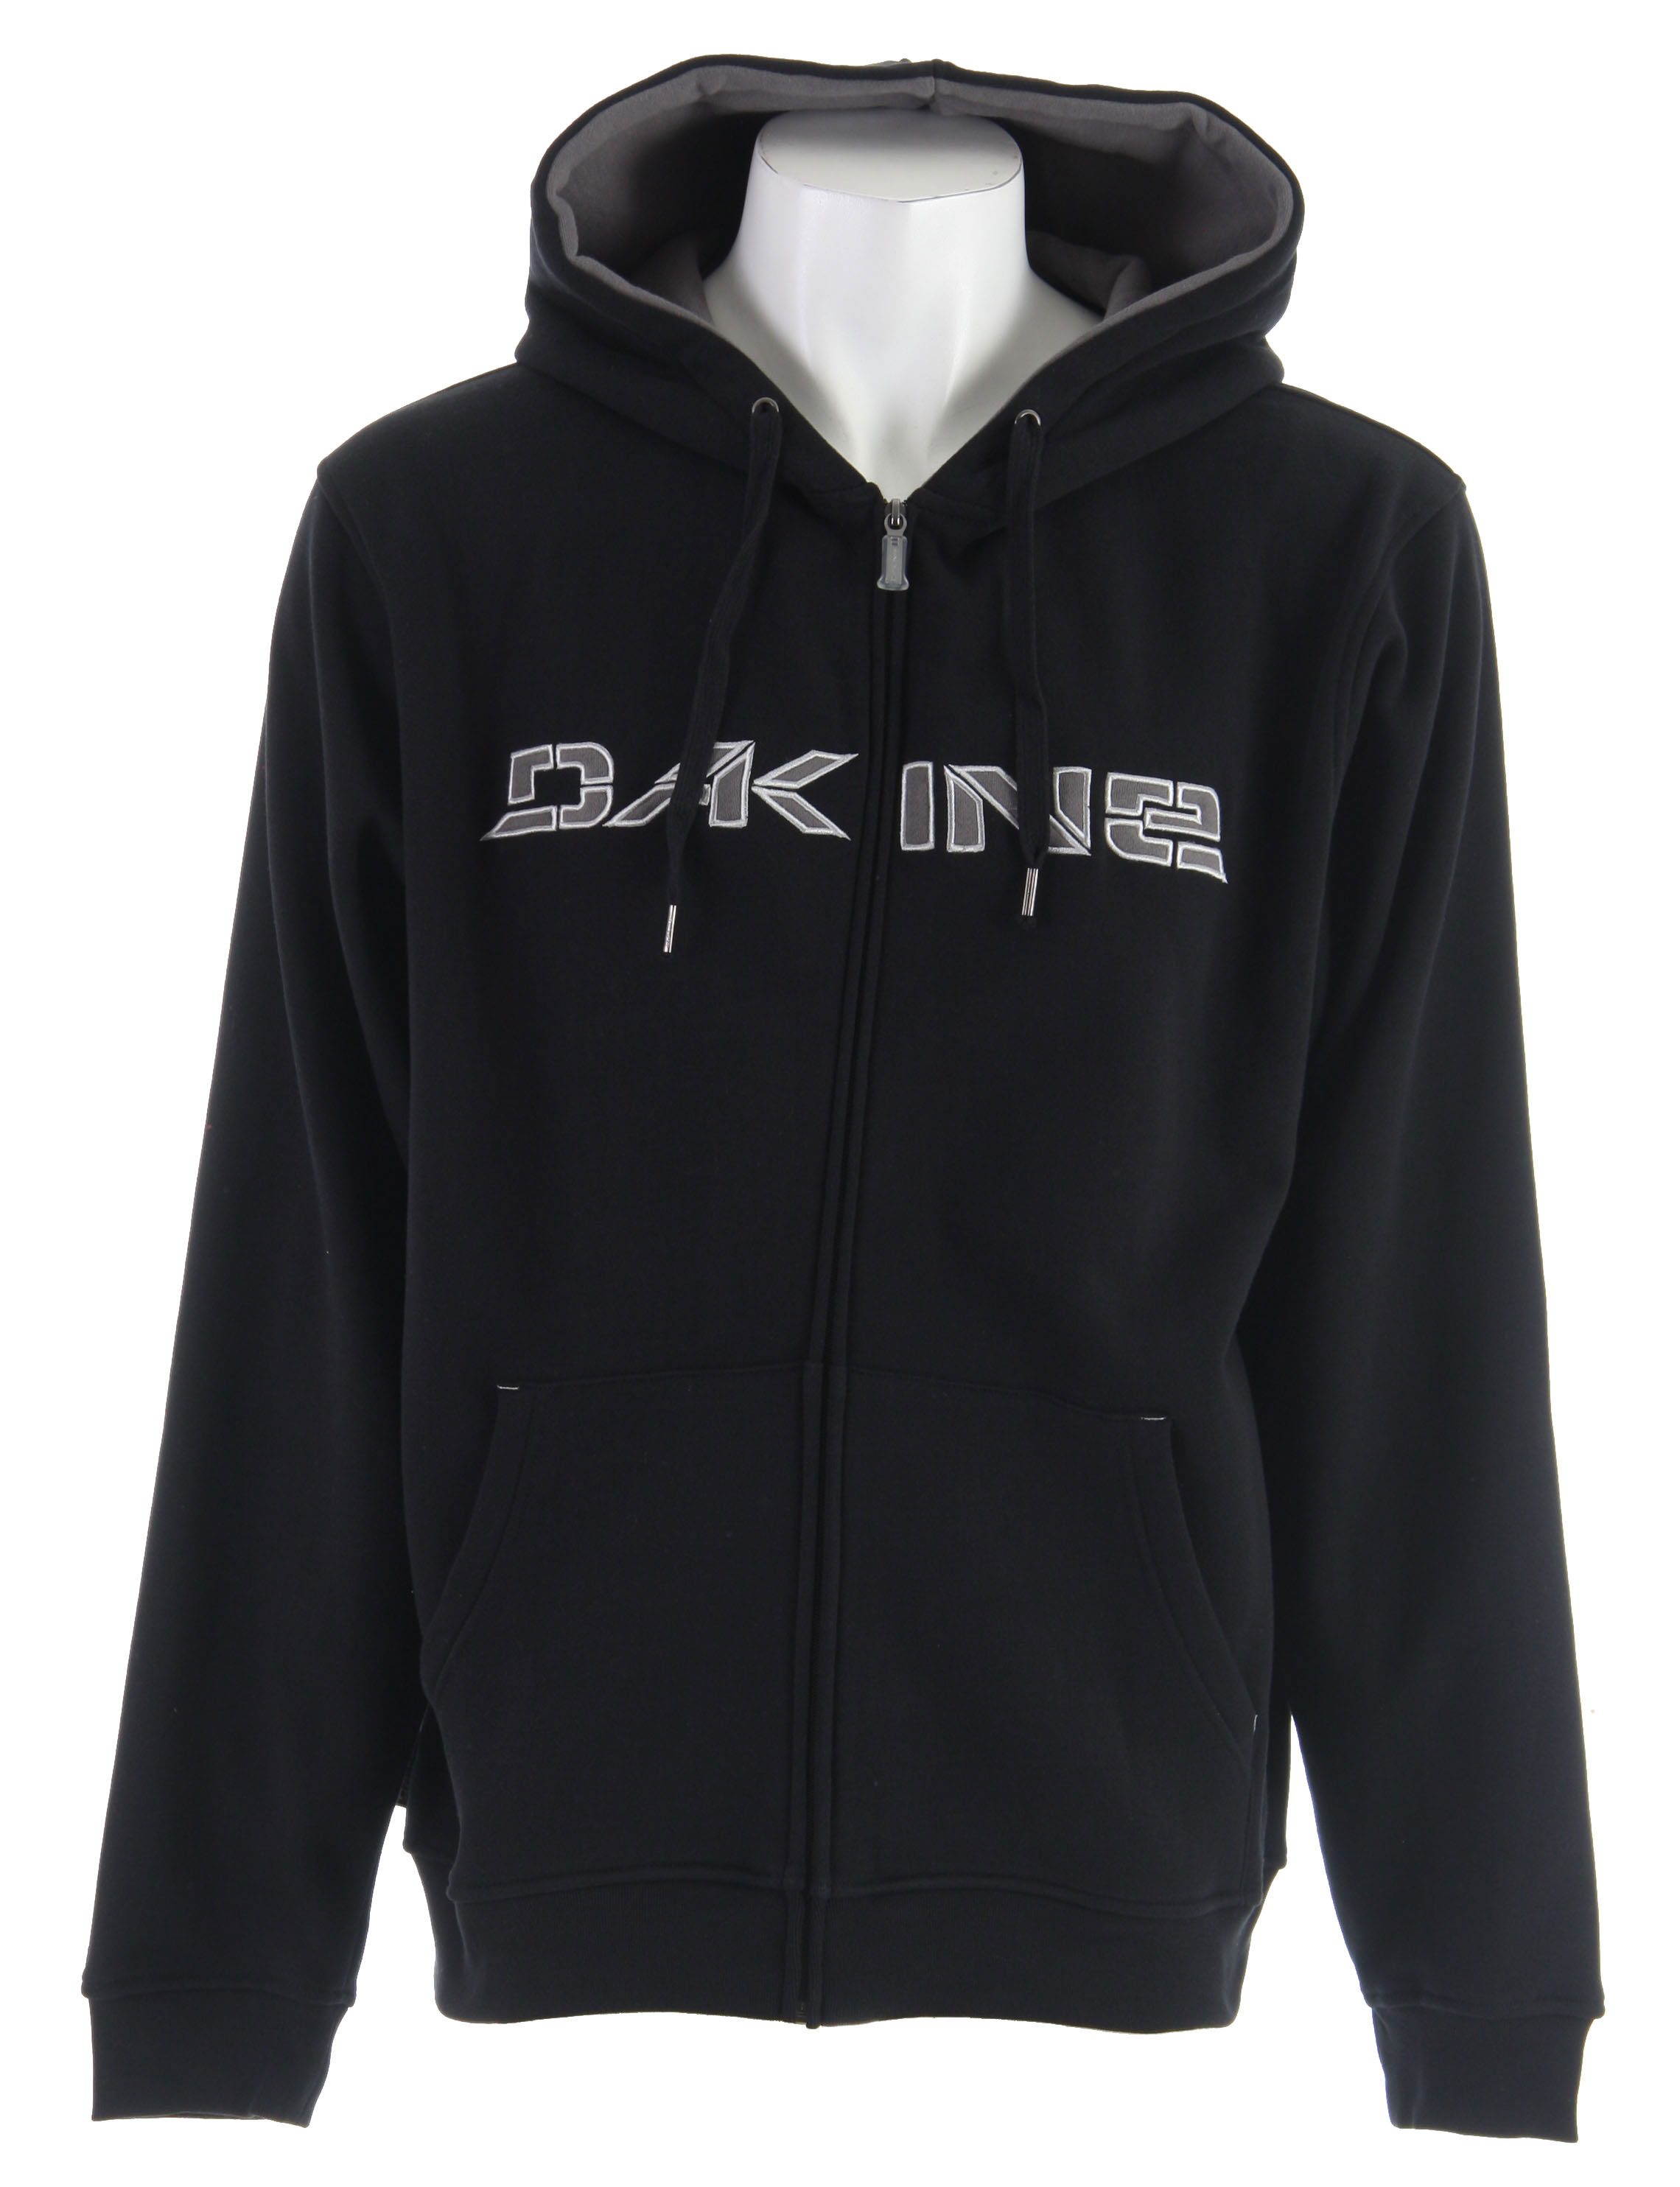 Surf Key Features of The Dakine Stencil Rail Hoodie: 70% Cotton / 30% Poly Fleece Cotton / Poly Fleece Lined Hood Full Zip - $34.95